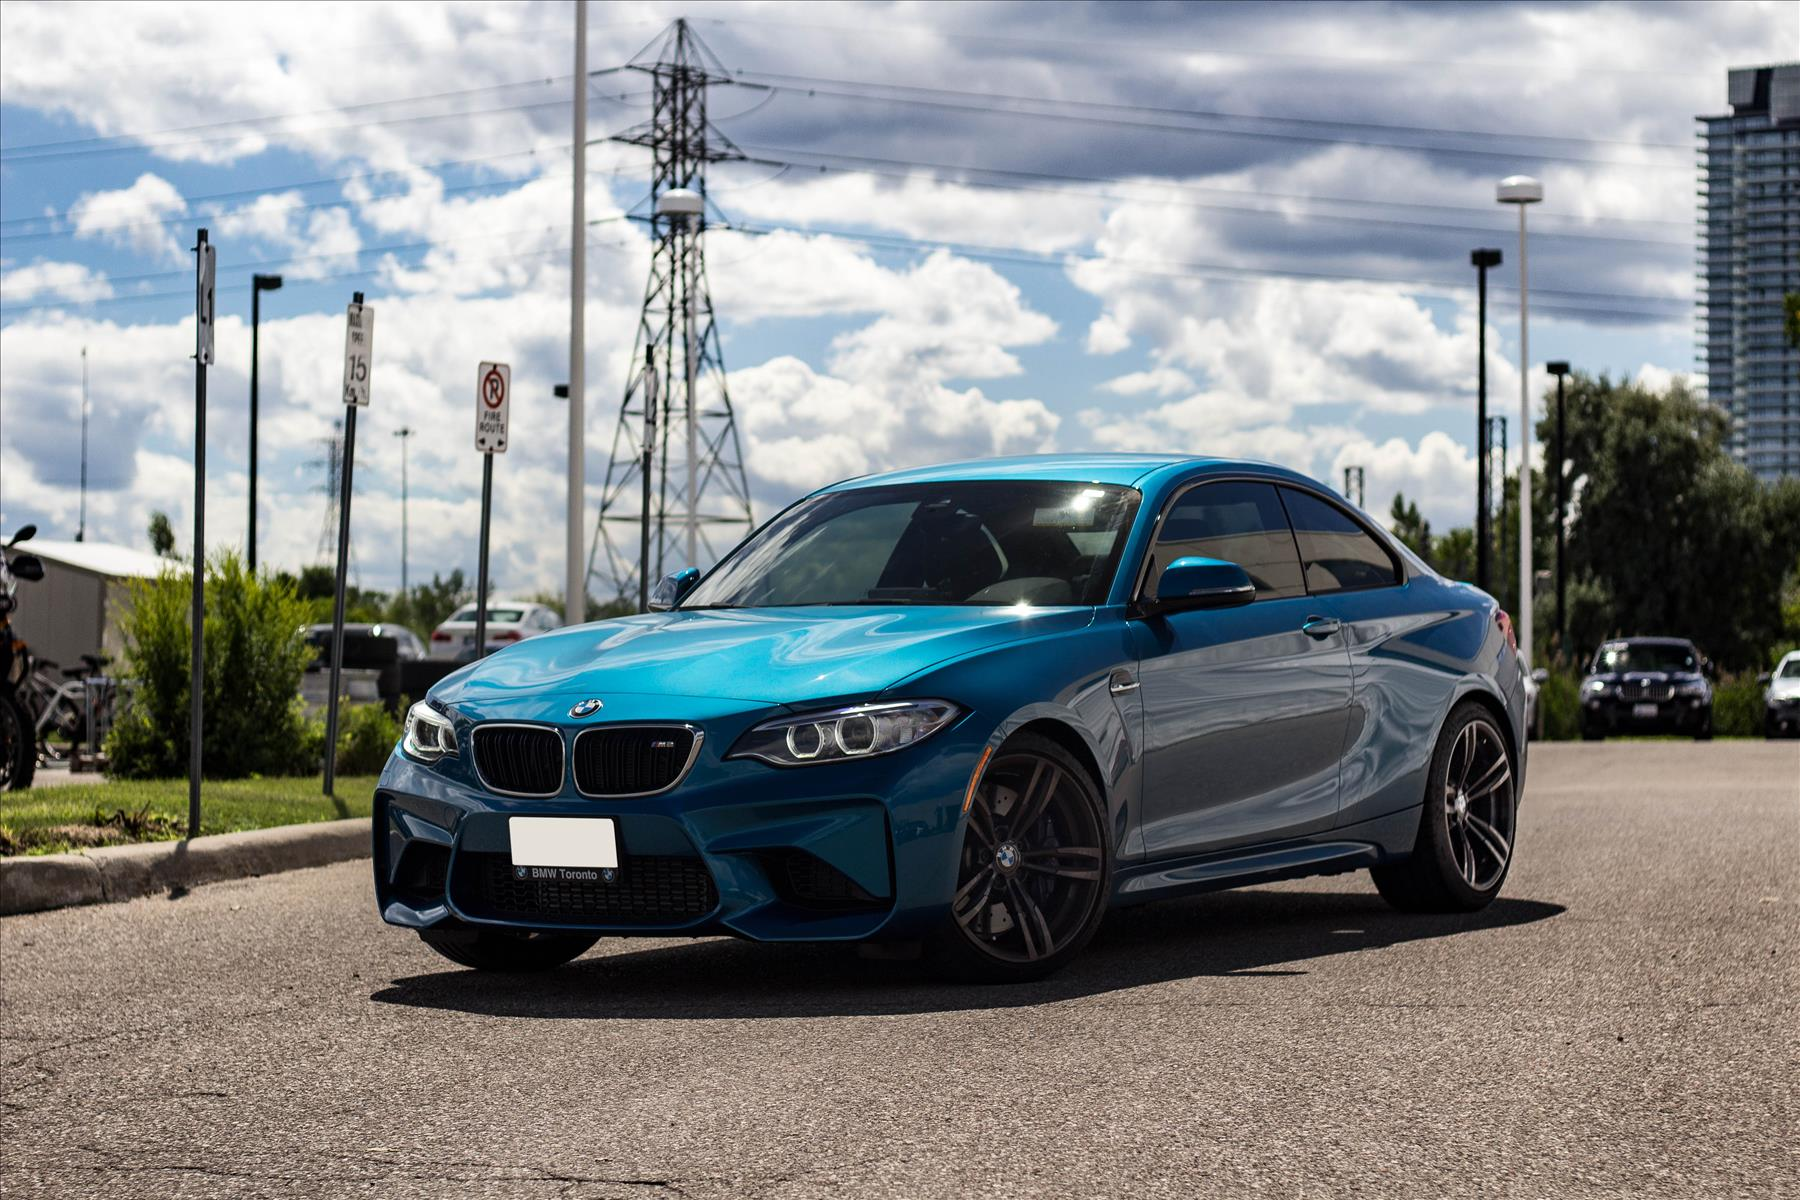 The All New BMW M2 in A Stunning Long Beach Blue!